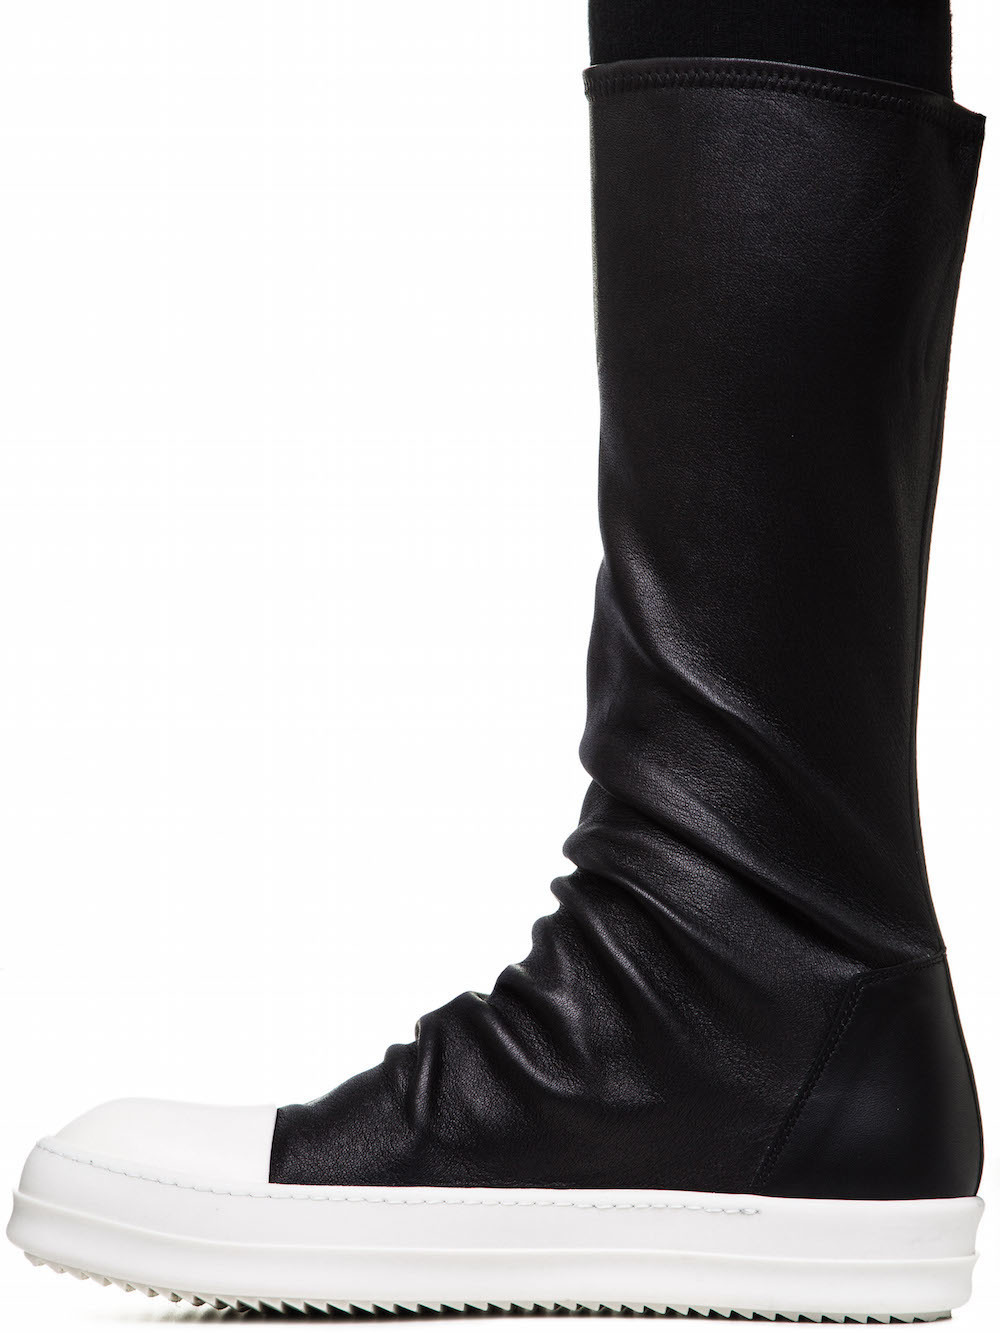 RICK OWENS SOCK SNEAKERS IN BLACK STRETCH LAMB LEATHER